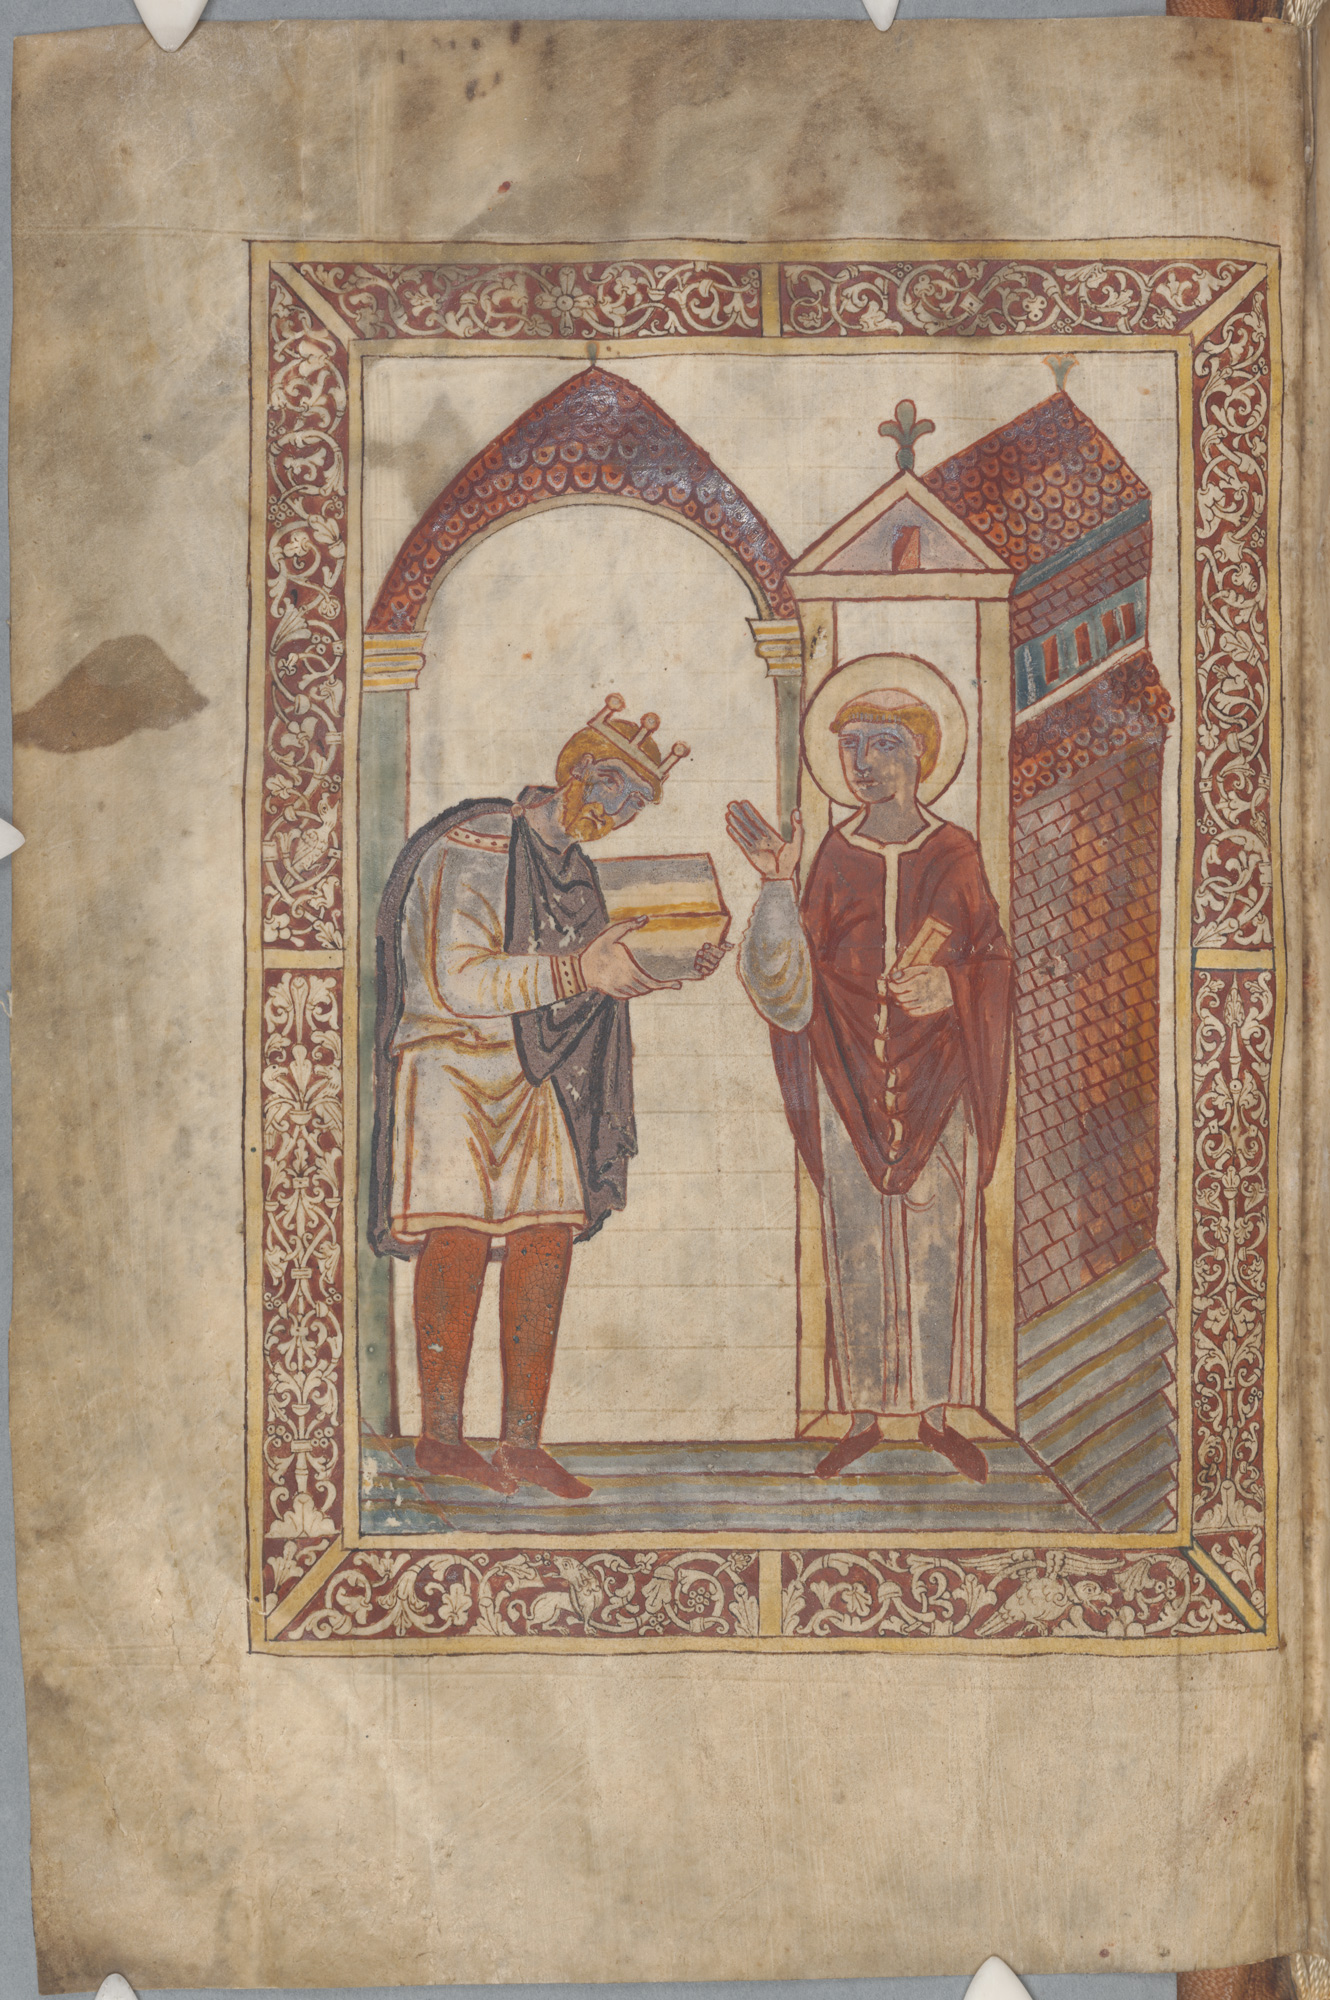 A manuscript page depicting a saint and a king